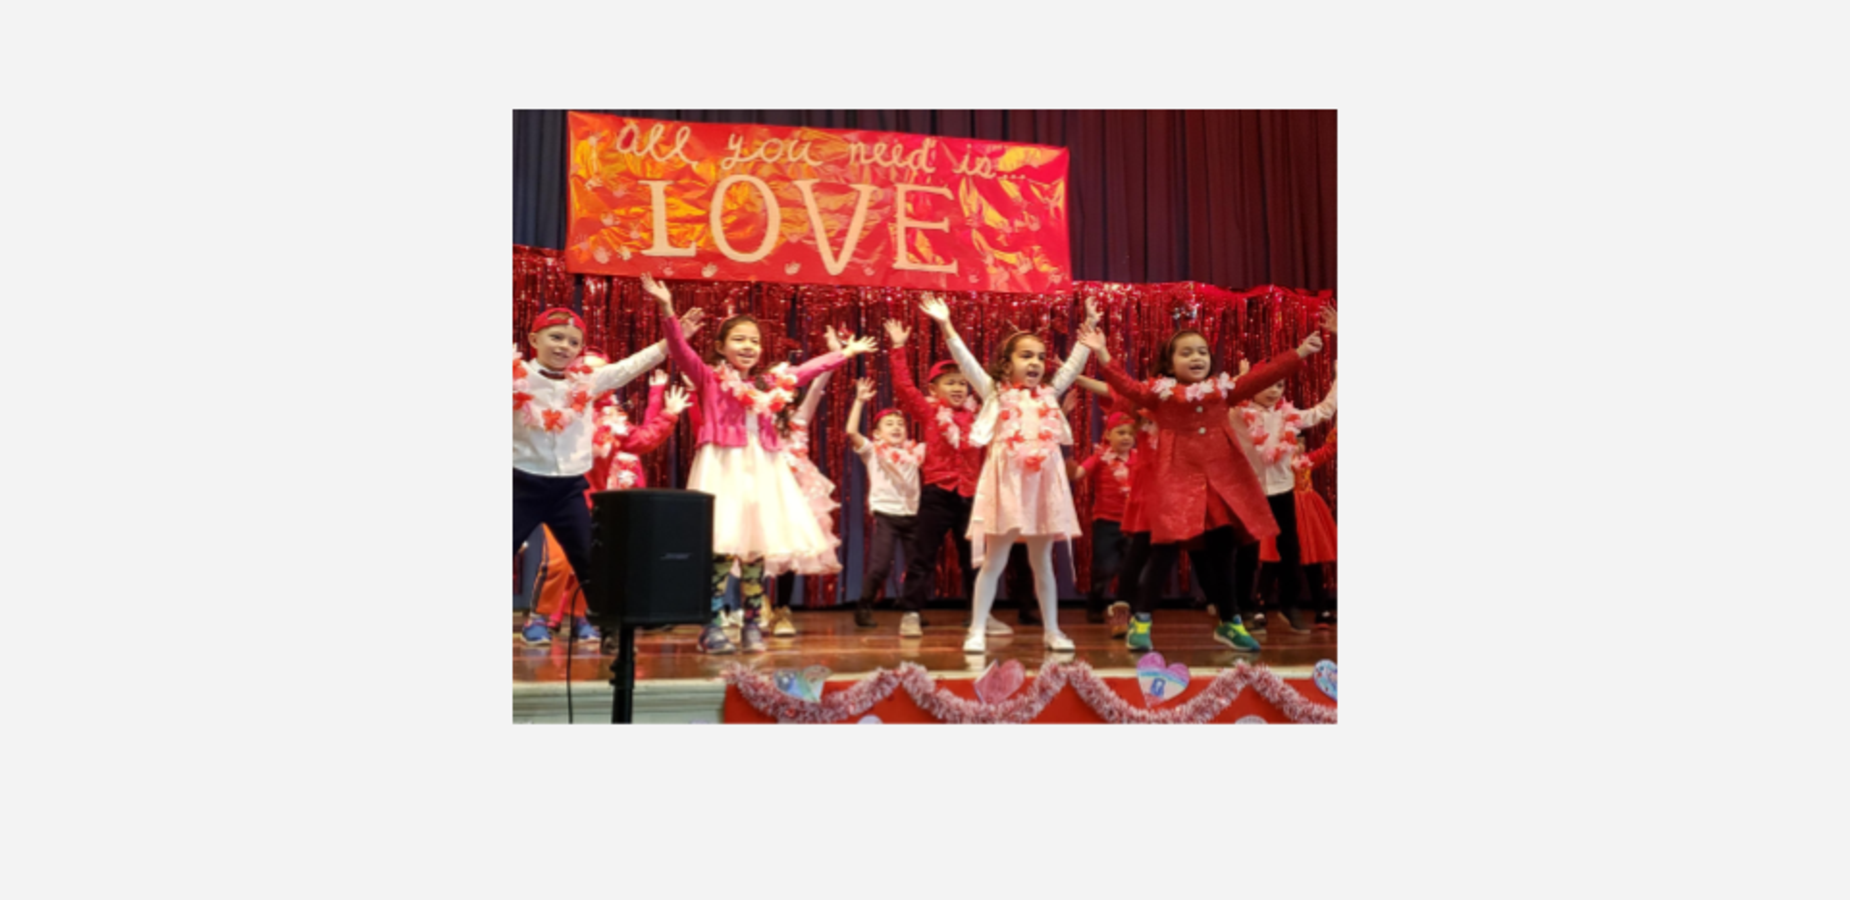 First grade, all you need is love, dance show.